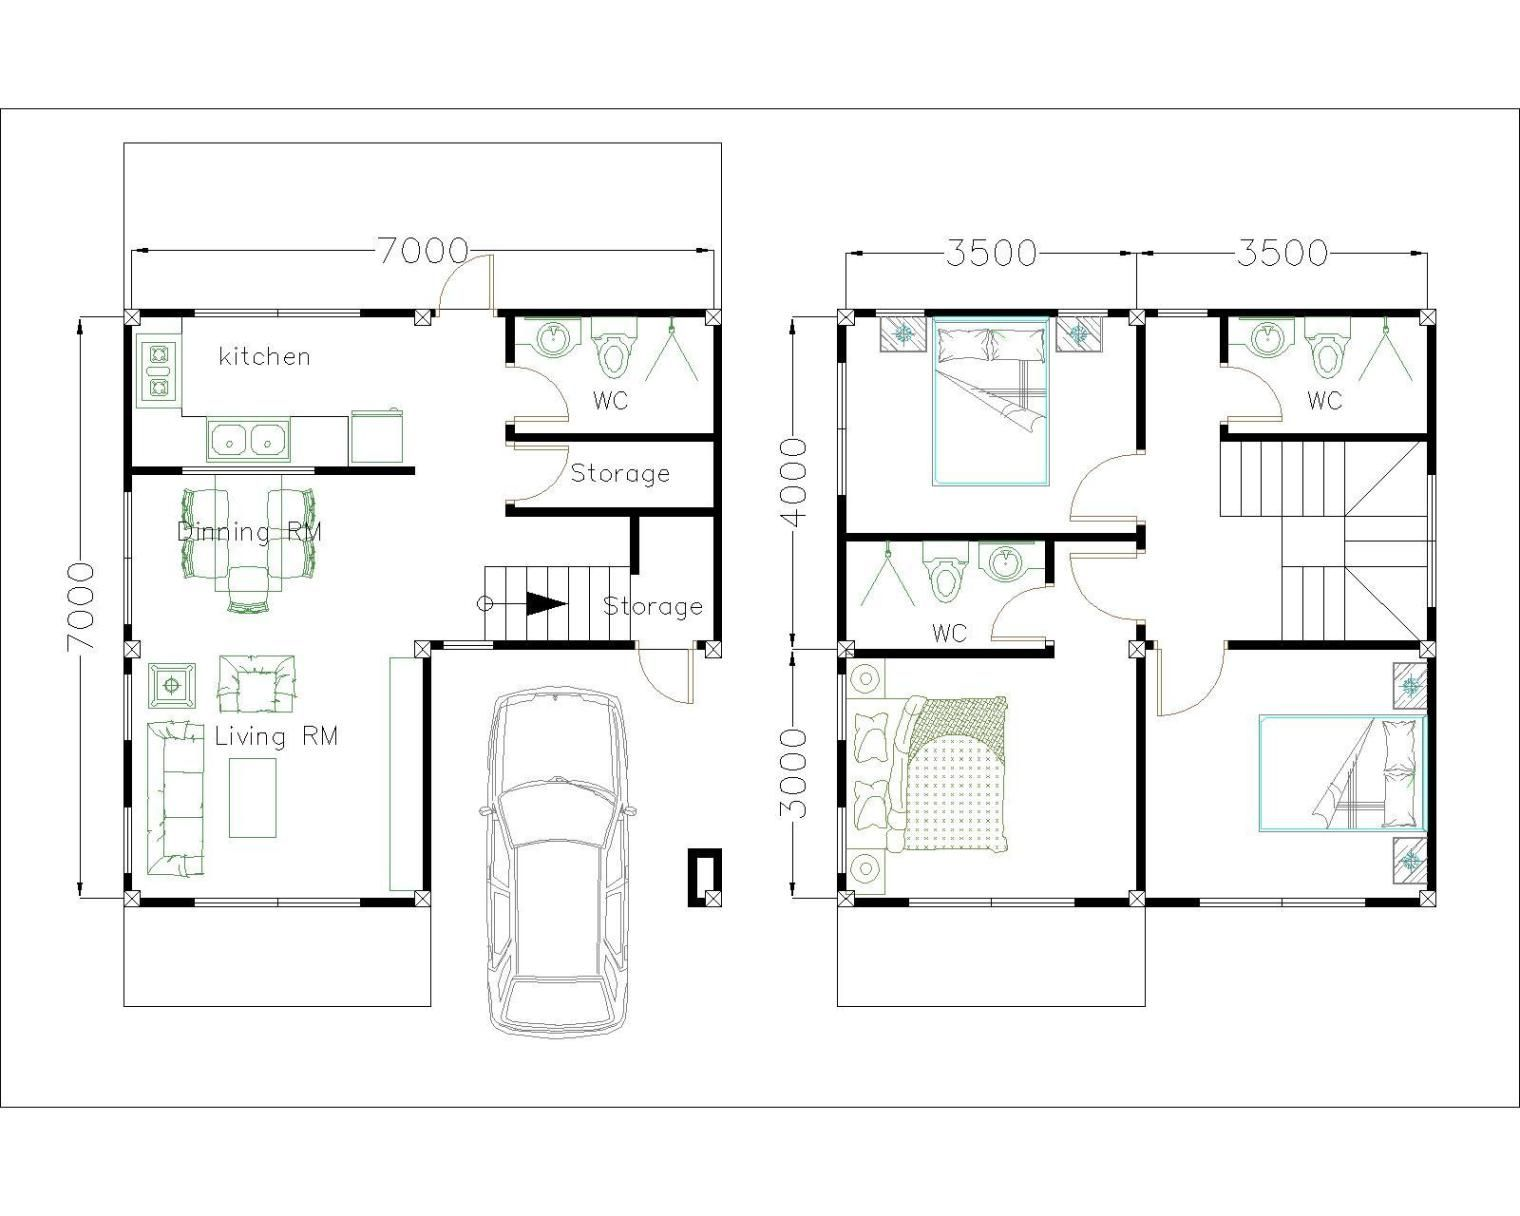 House Plans 7x7m with 3 Bedrooms (With images) House